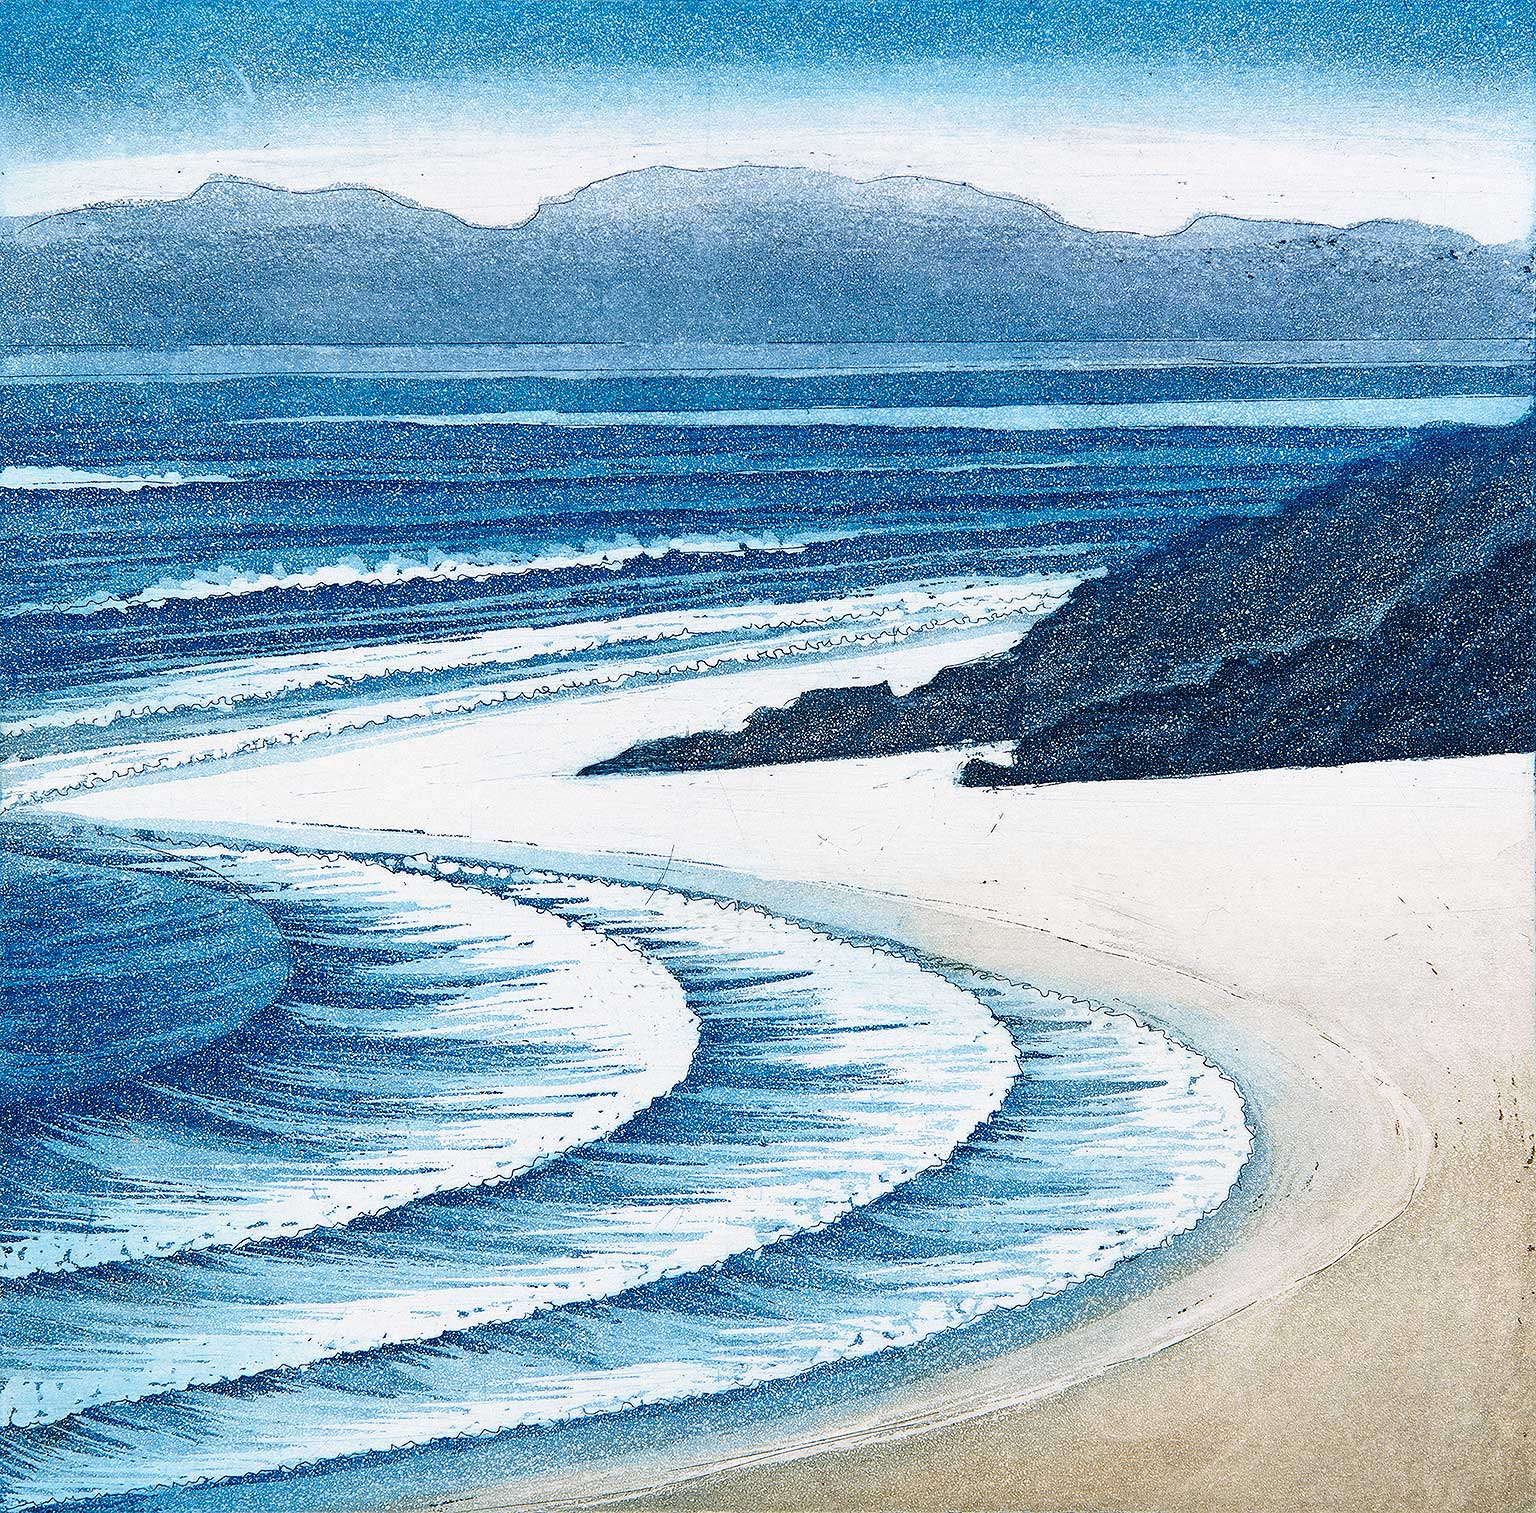 'Low Tide, Gower' by Morna Rhys